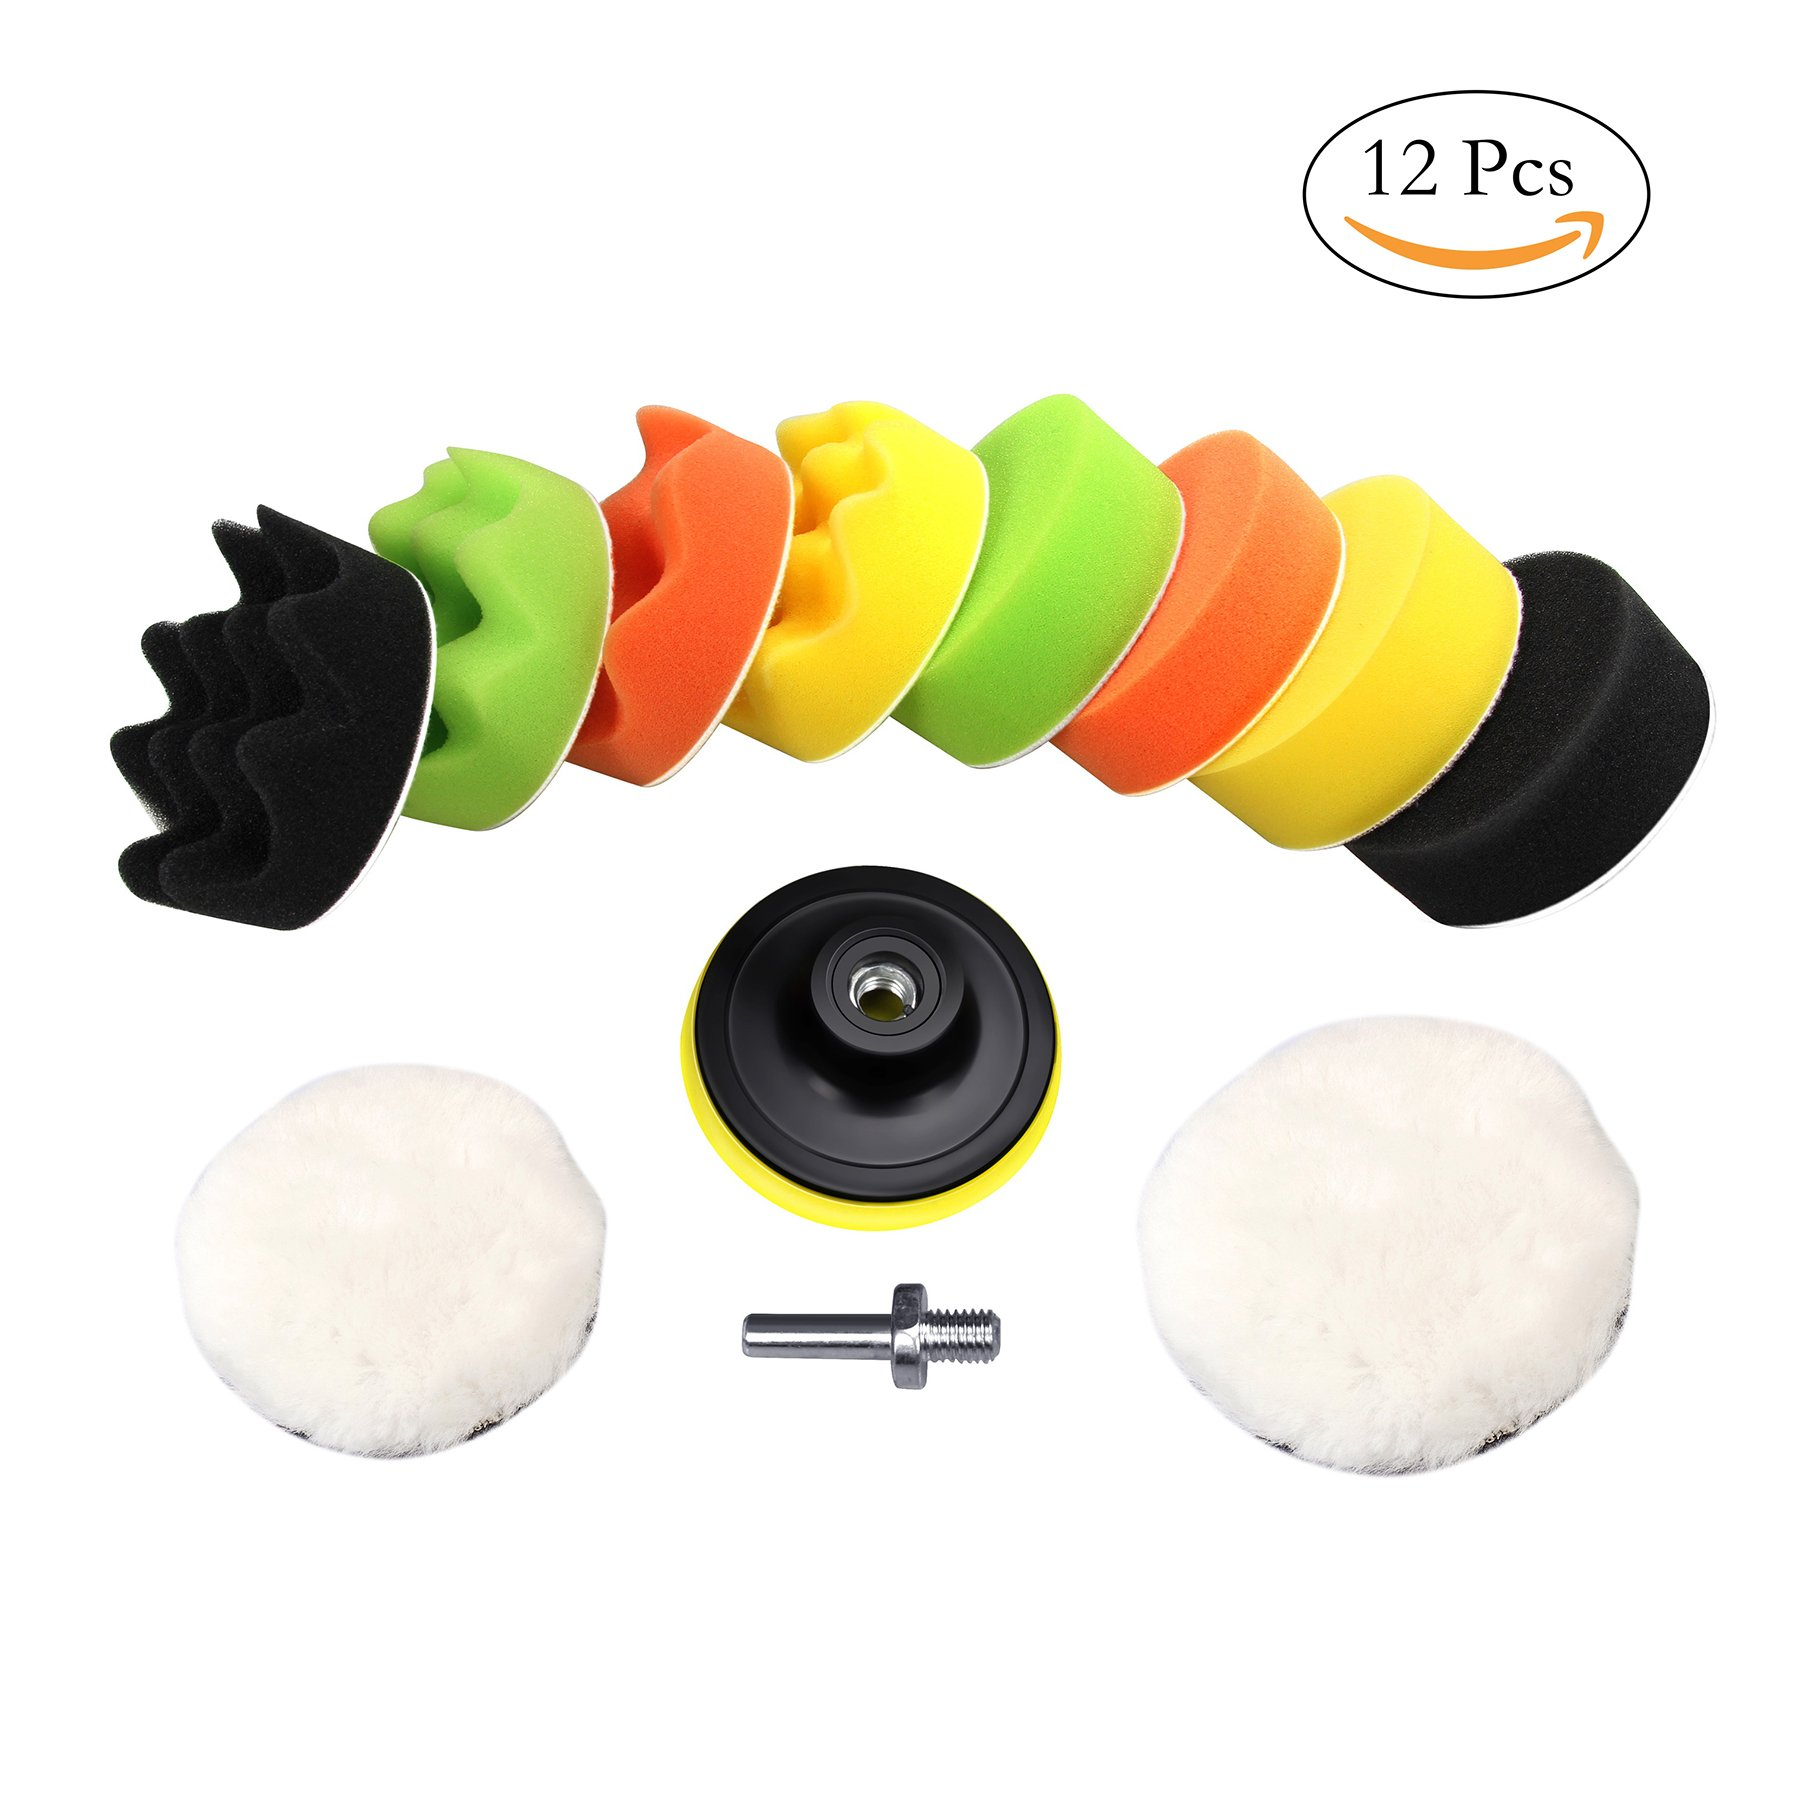 """3""""/80mm Buffing Pads Kit (Wool Sponge Polishing Pad) with M10 Drill Adapter 12pcs for Auto Car Sanding, Buffing, Waxing, Sealing Glazing by MoArmor"""